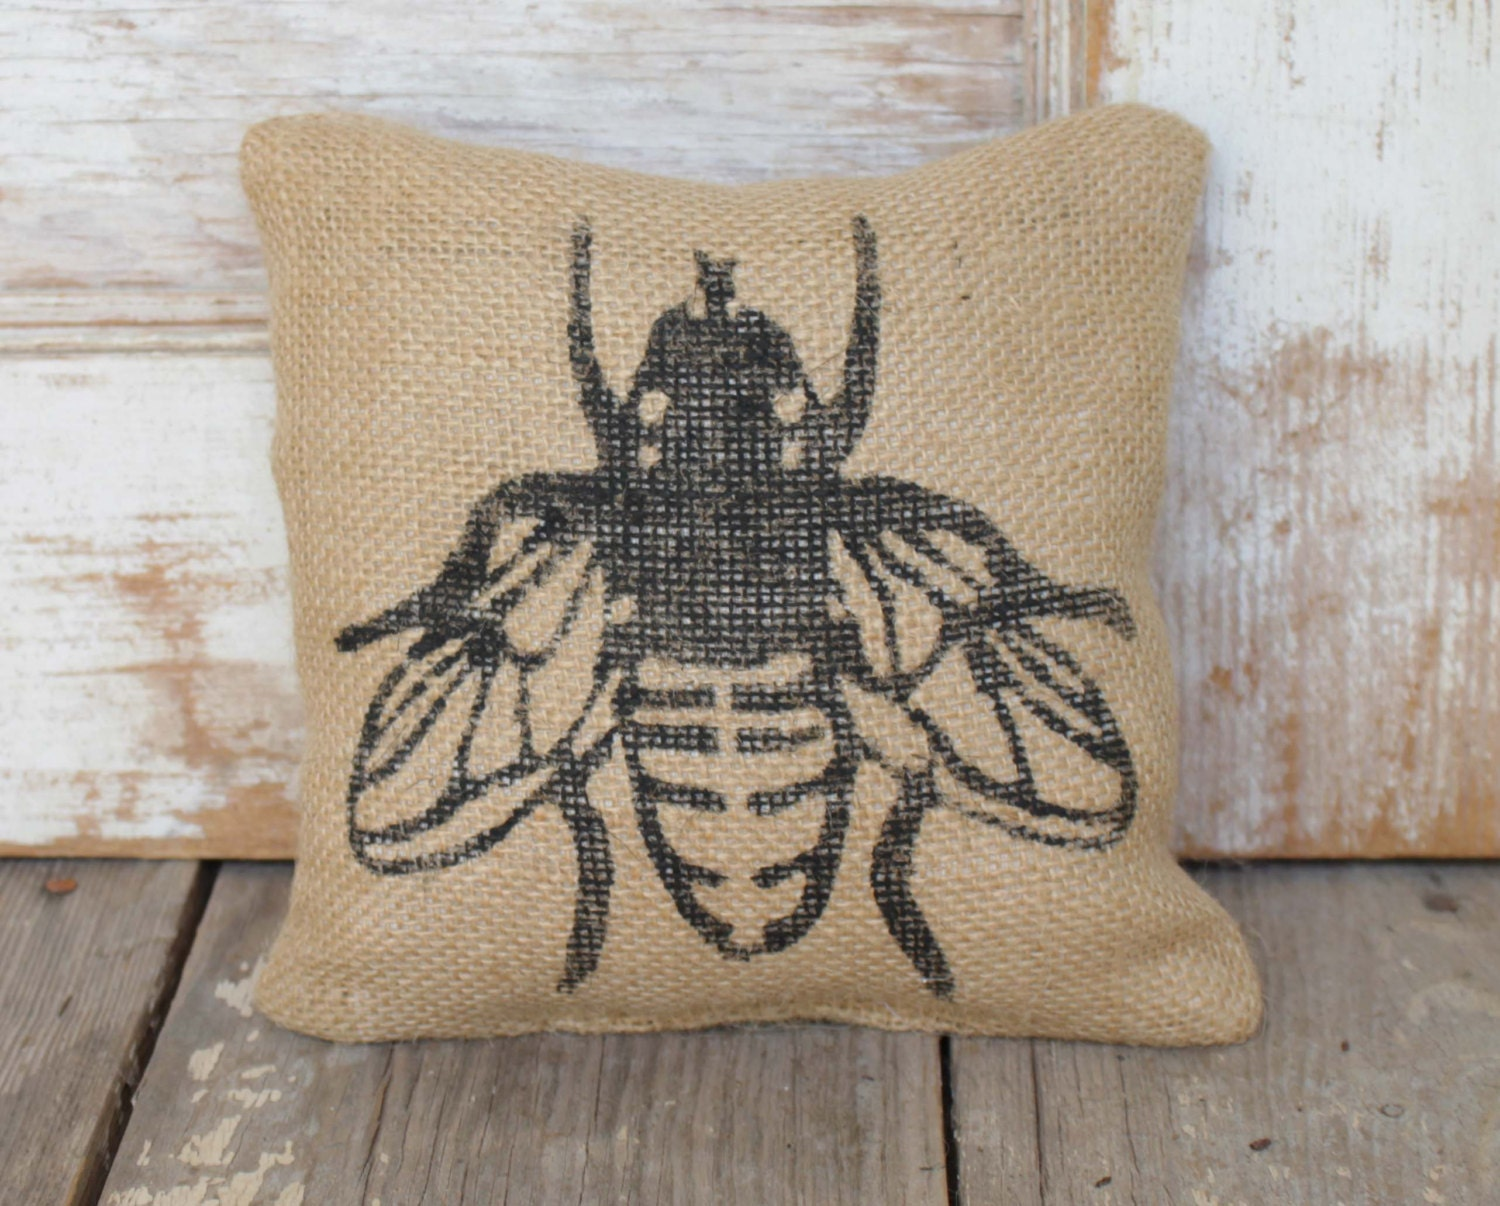 Save The Bees   Burlap Doorstop   Fabric Doorstop   Honey Bee Decor    Bumble Bee Decorations   Door Stop   Garden Decor   Nature